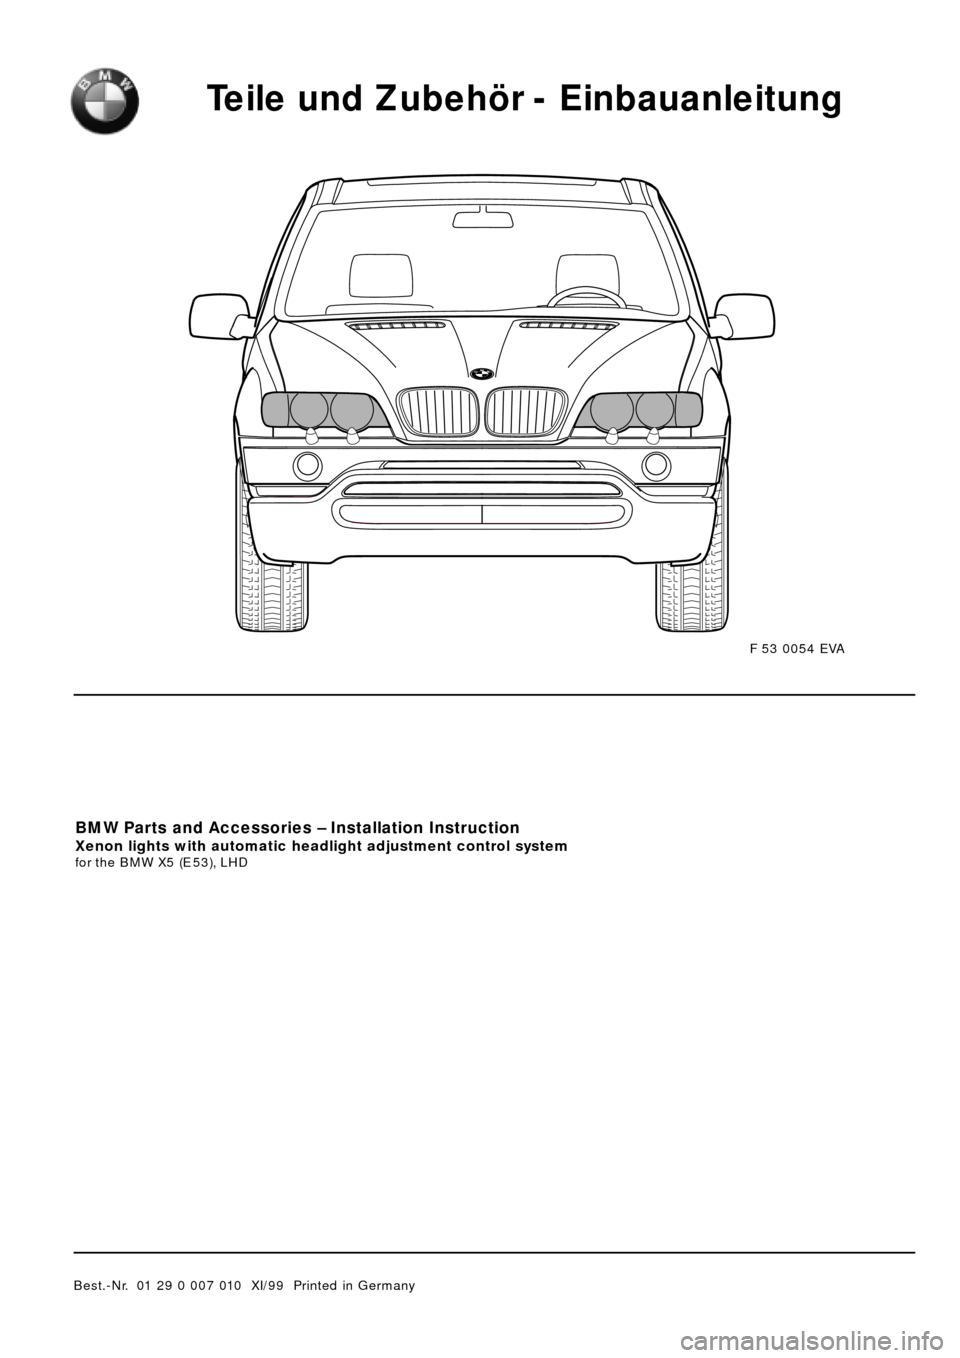 bmw x5 2000 e53 xenon lights instalation instruction manual